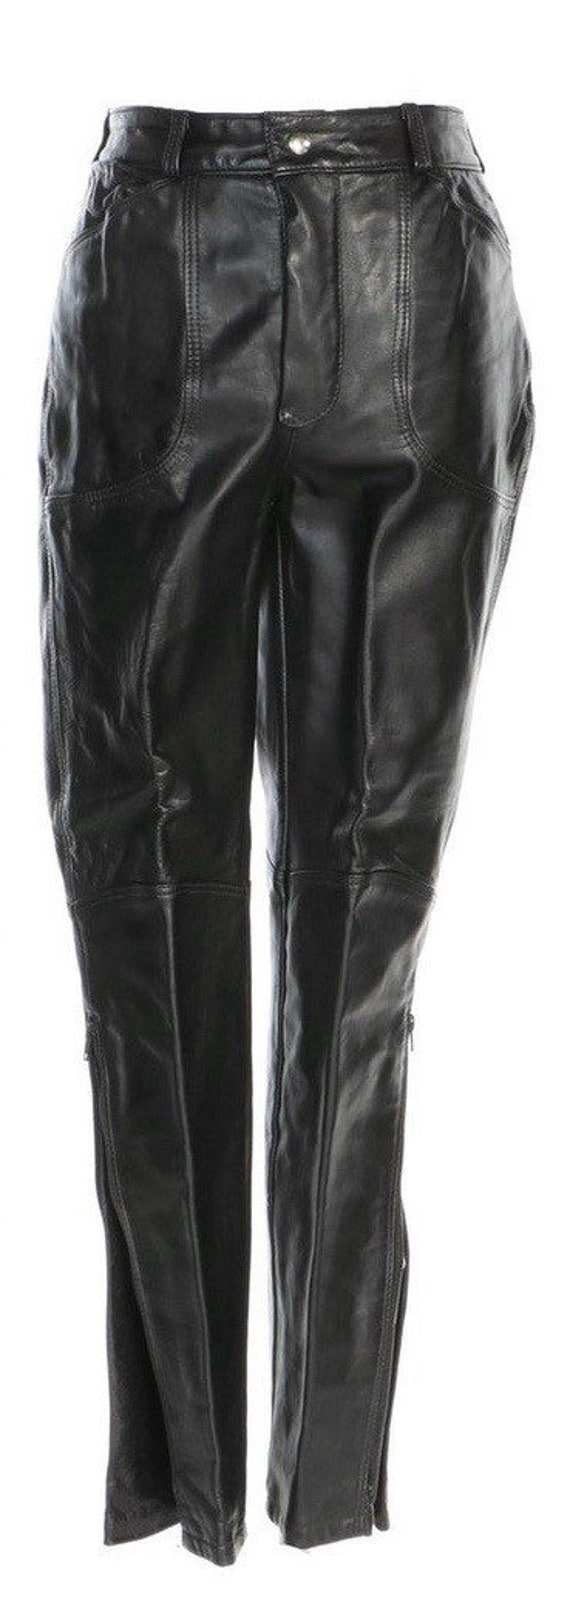 90s Leather Pant  - 90s Leather Trouser - Vintage… - image 4